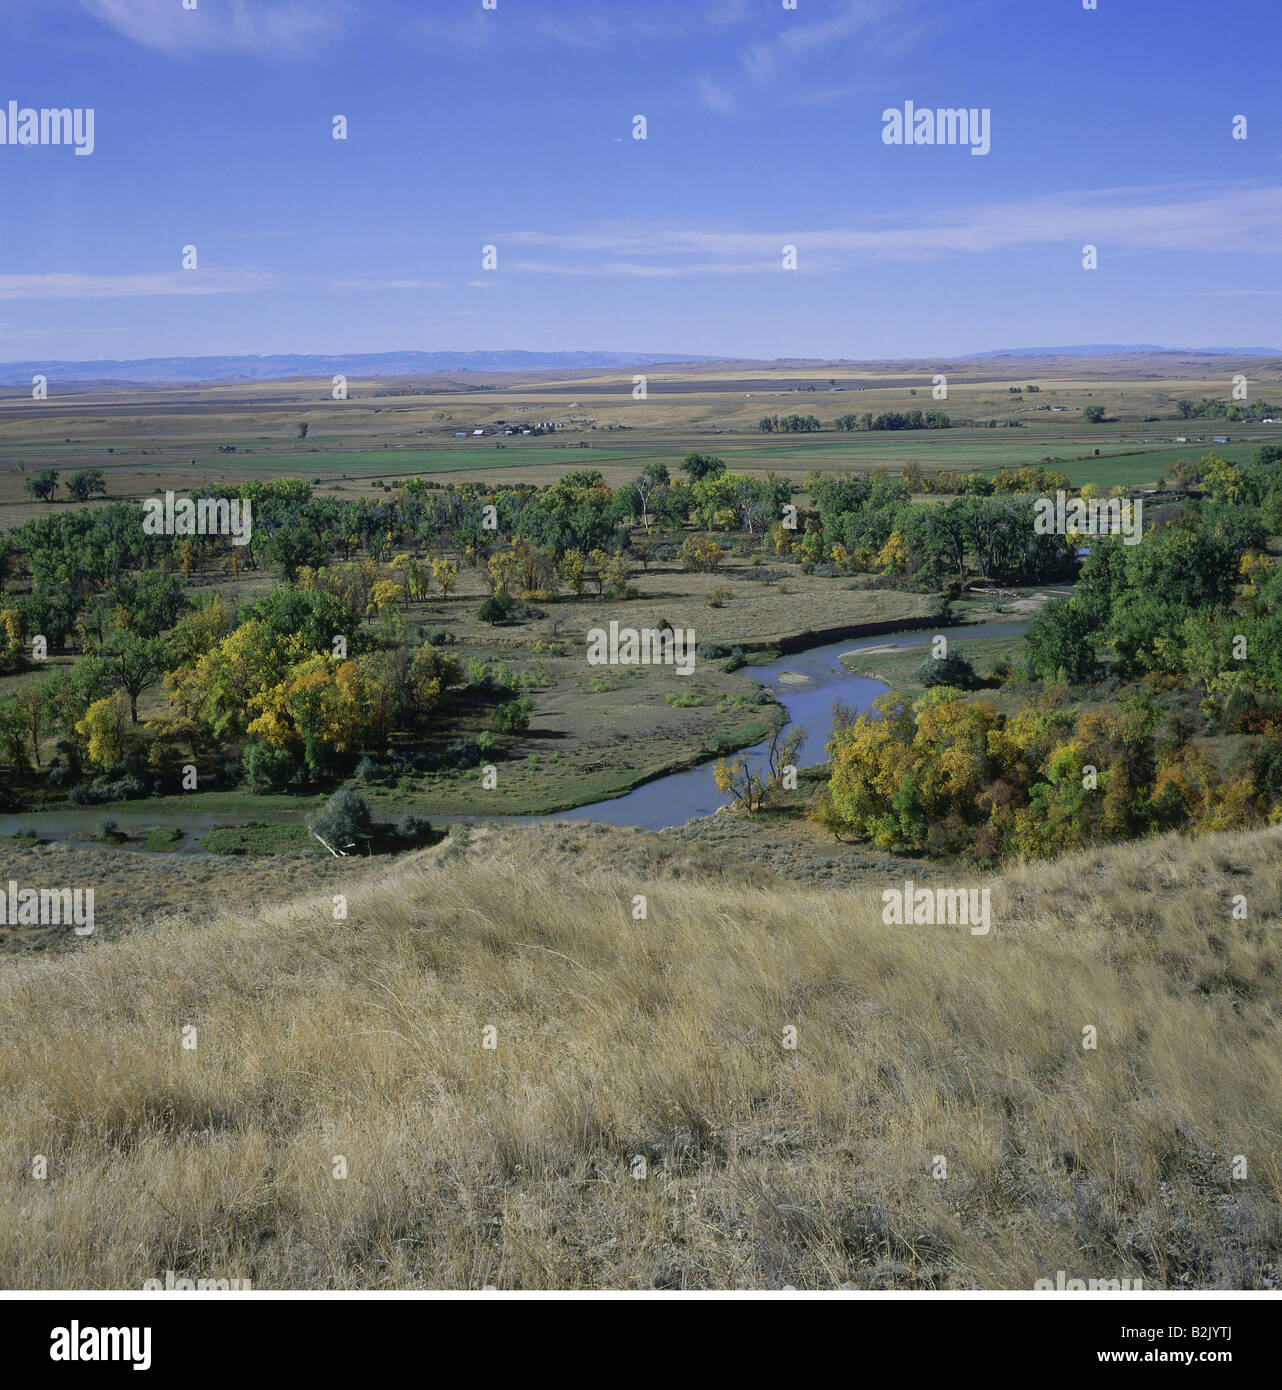 Travel Geography: Bighorn River Stock Photos & Bighorn River Stock Images